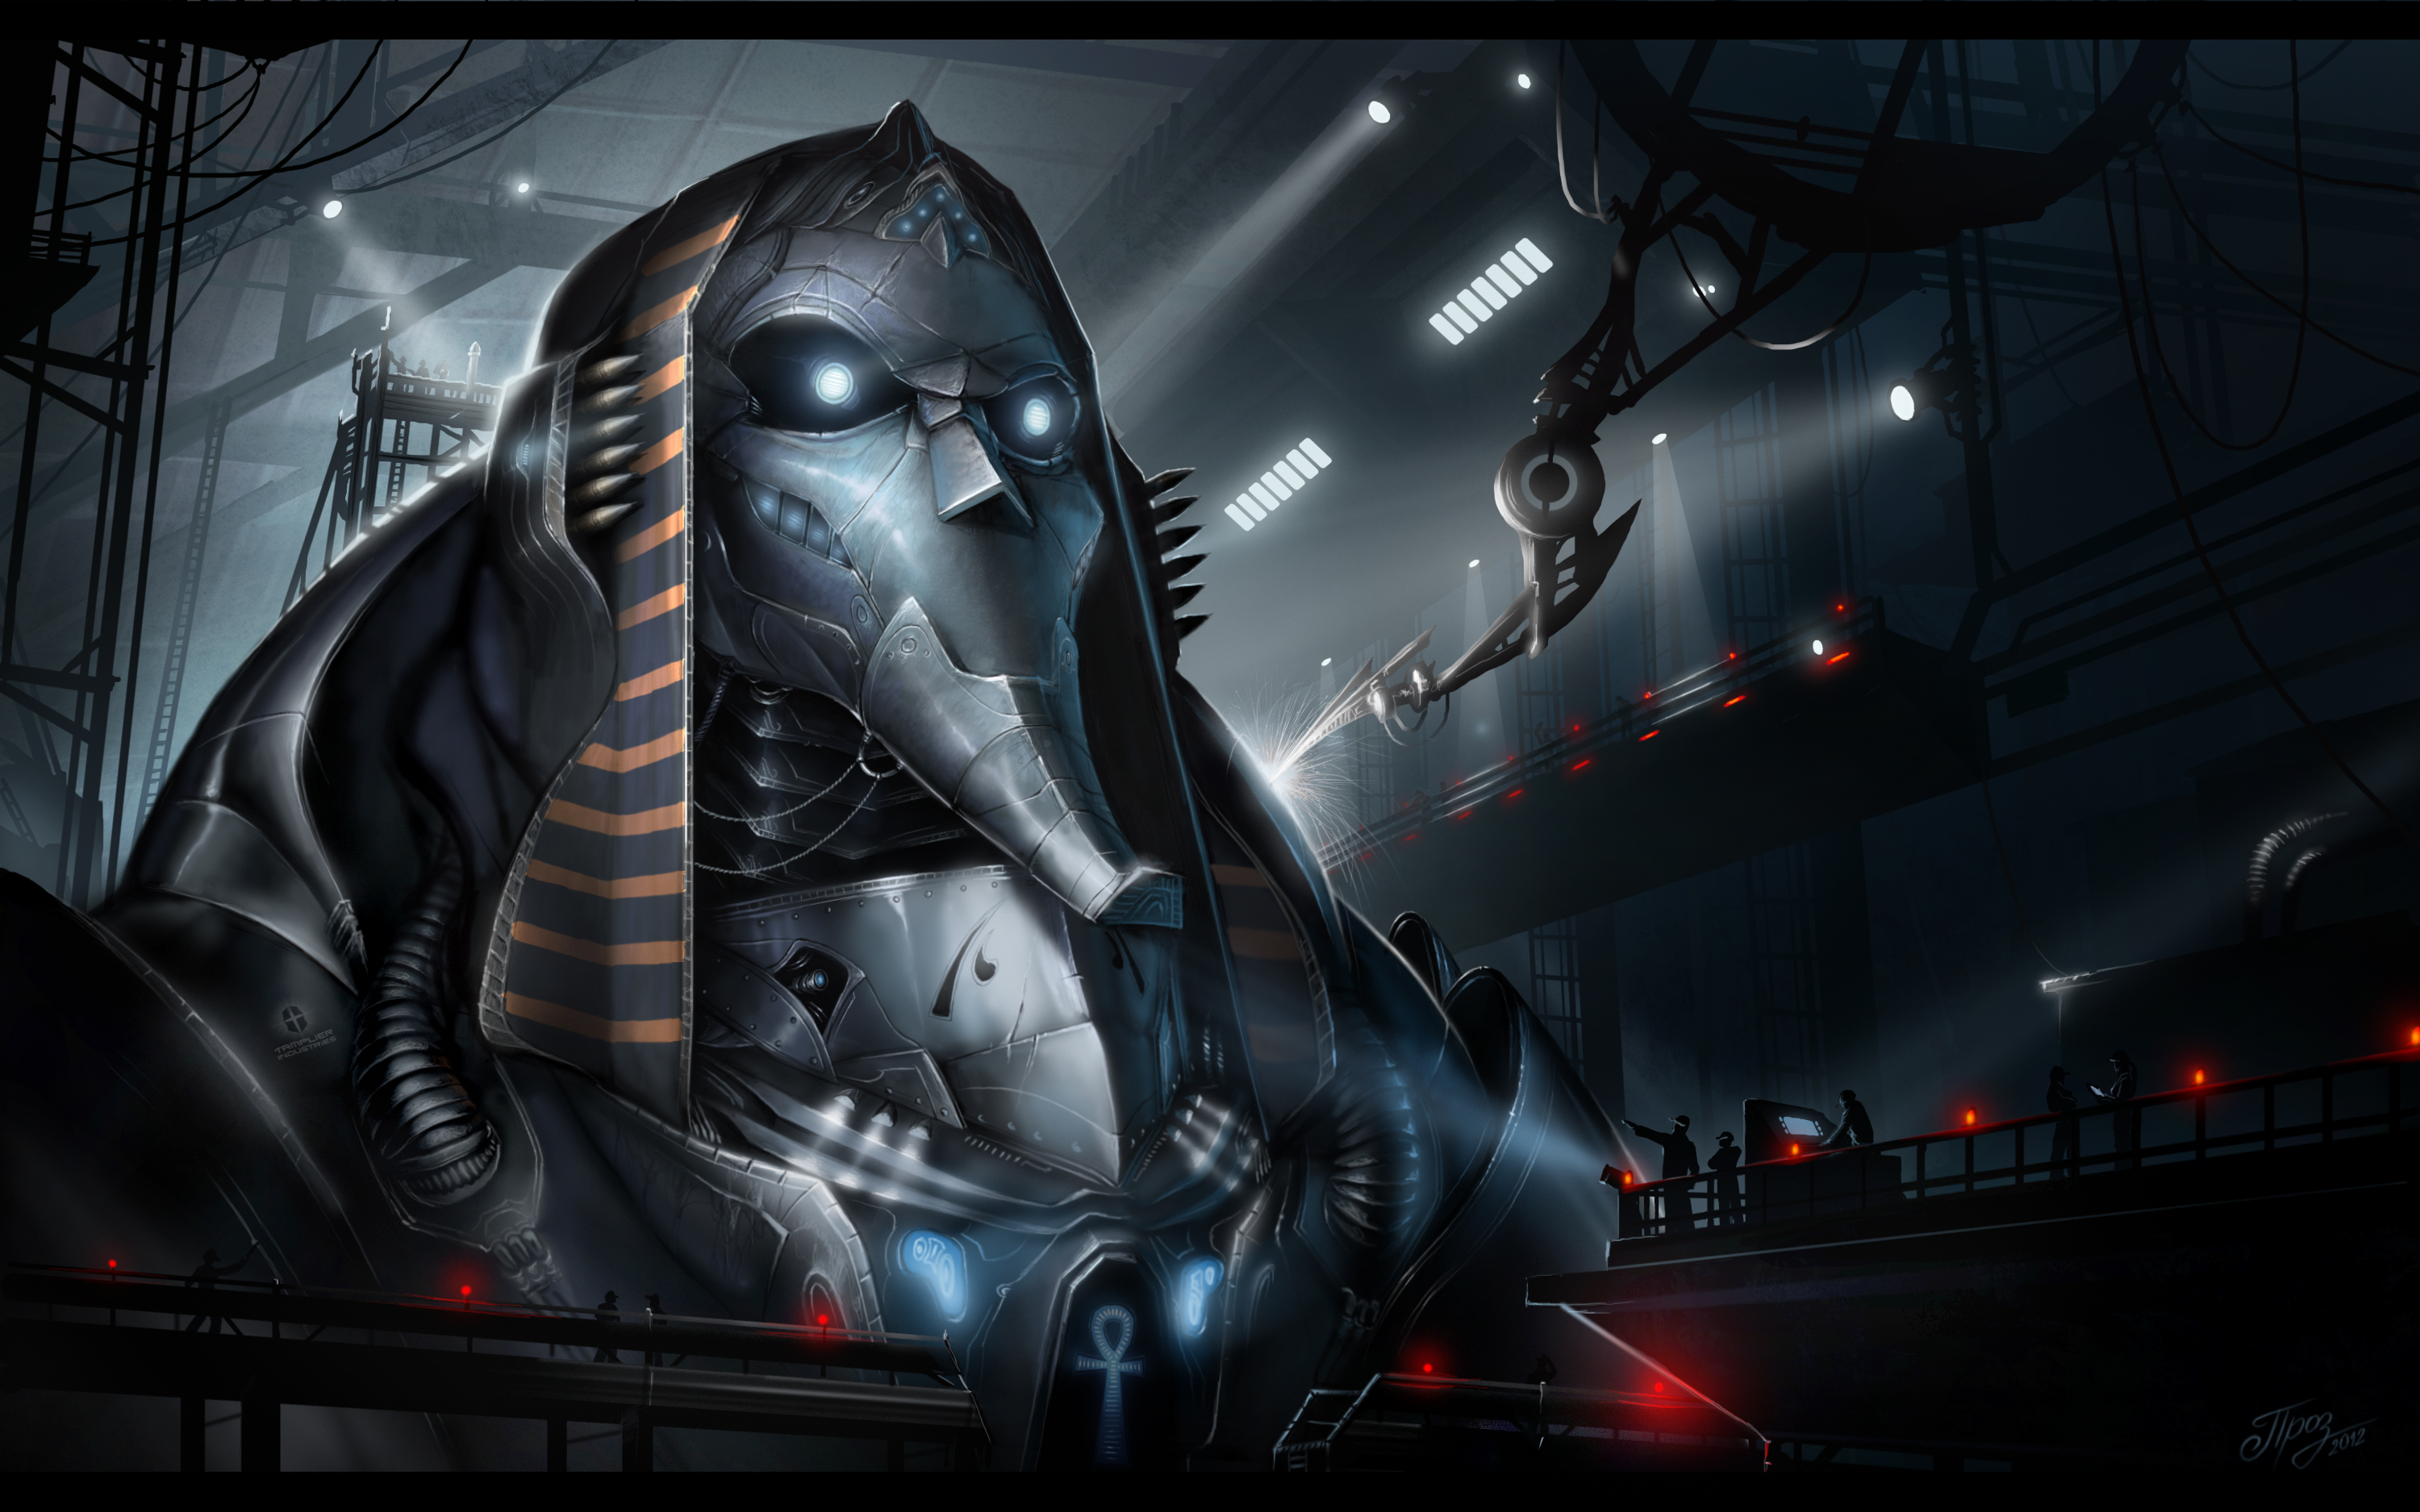 Project Pharaoh by TamplierPainter